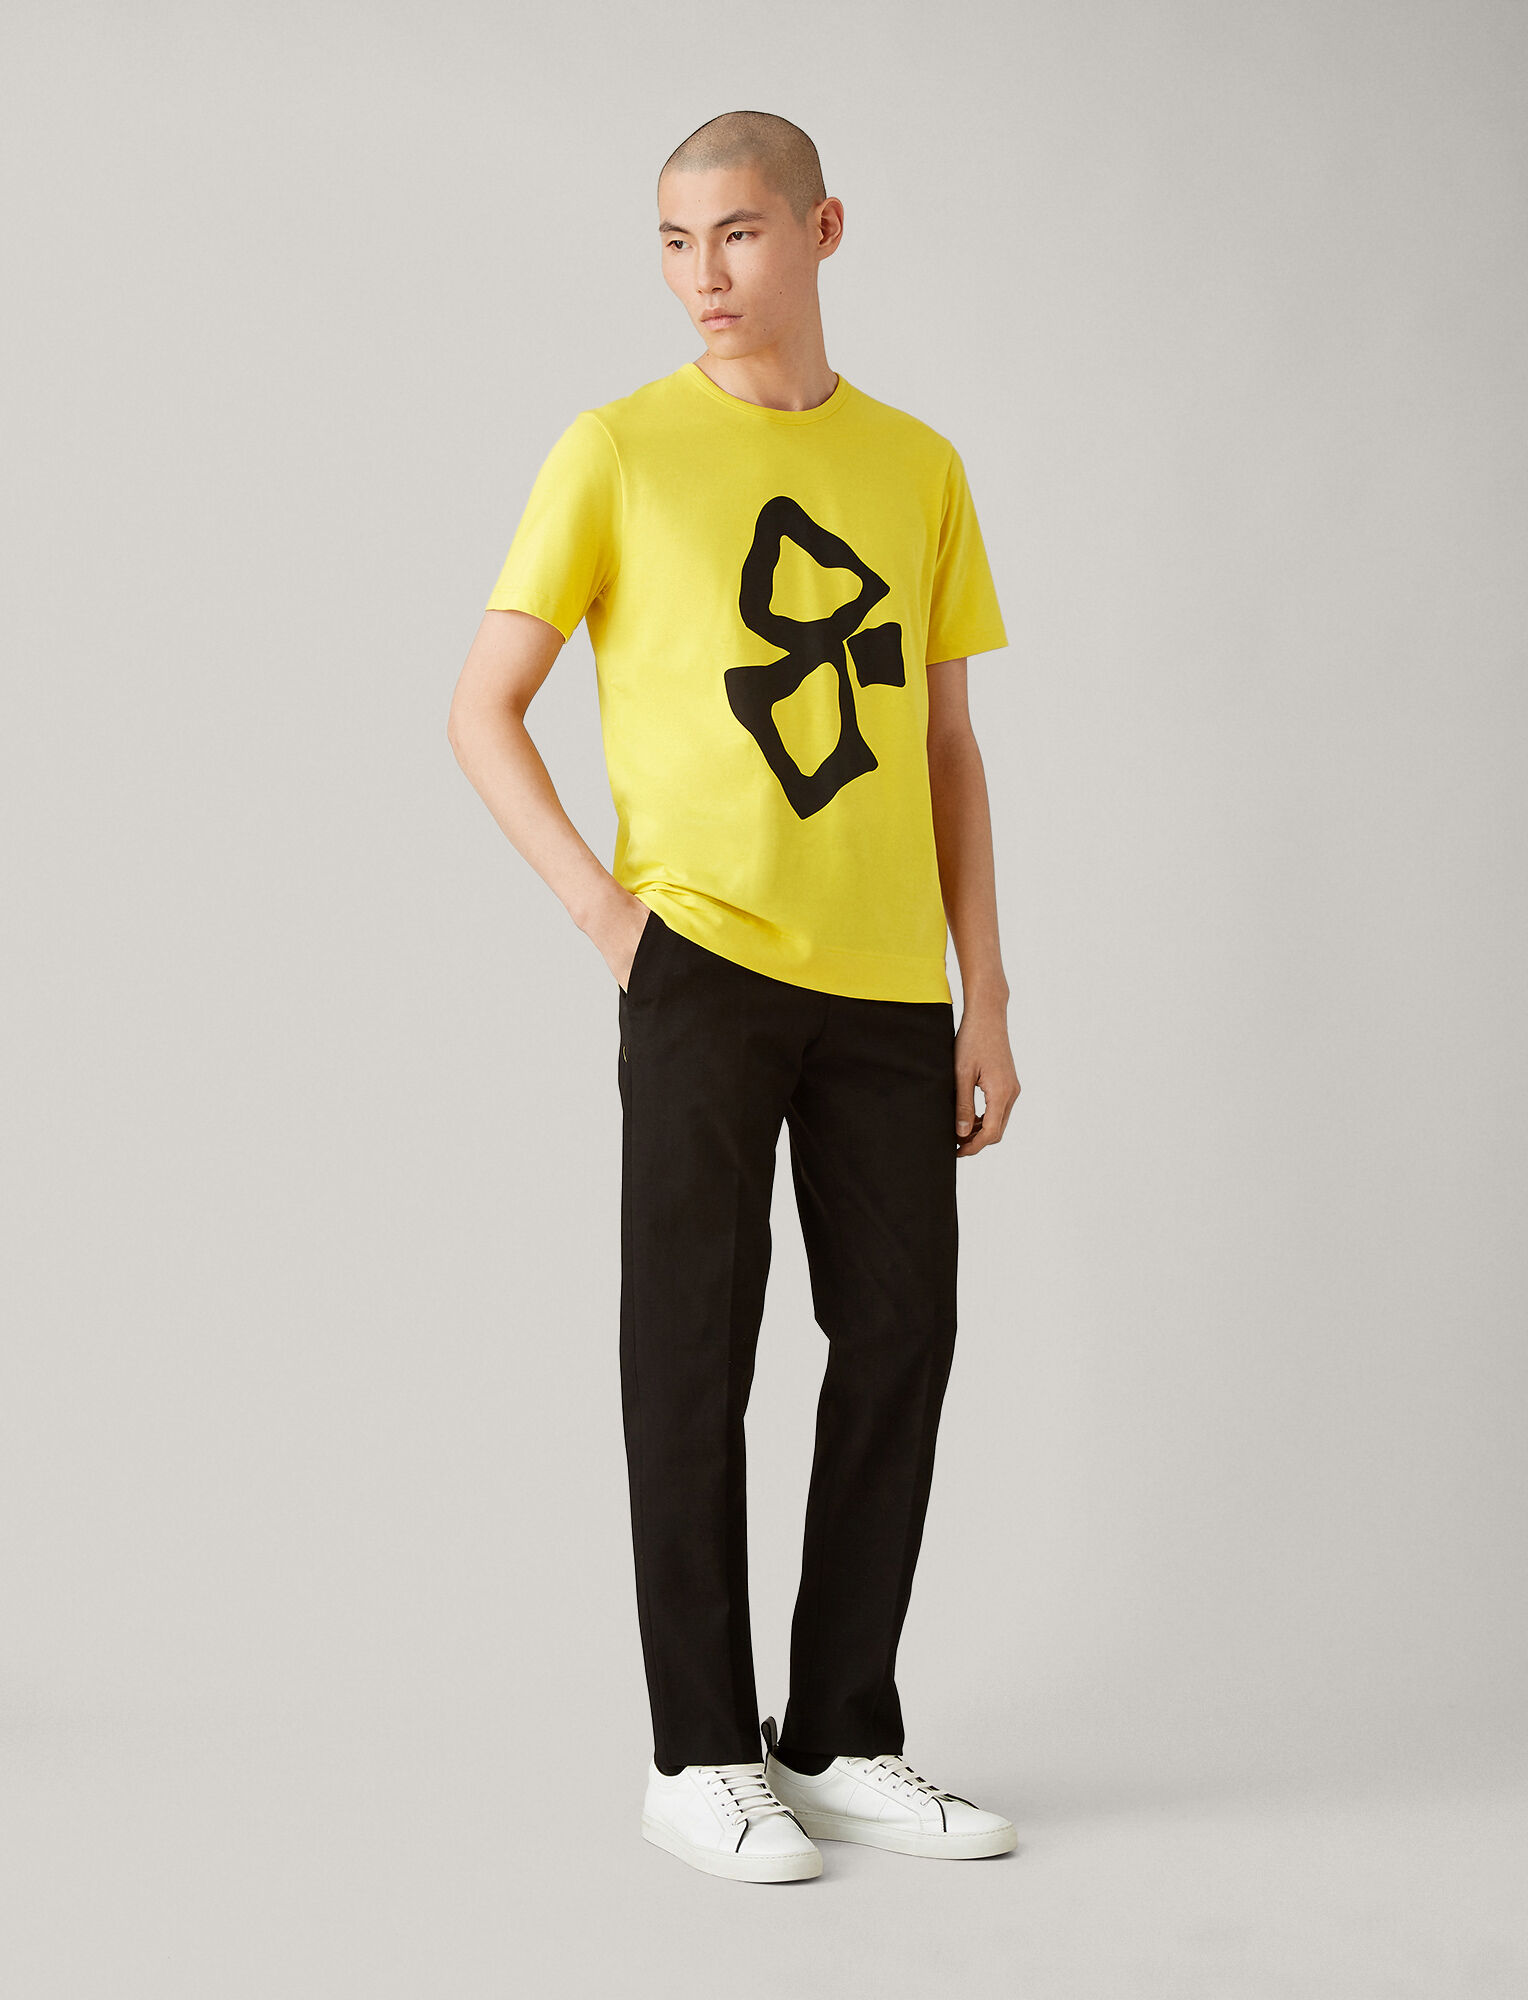 Joseph, Printed Jersey Tee, in LIME